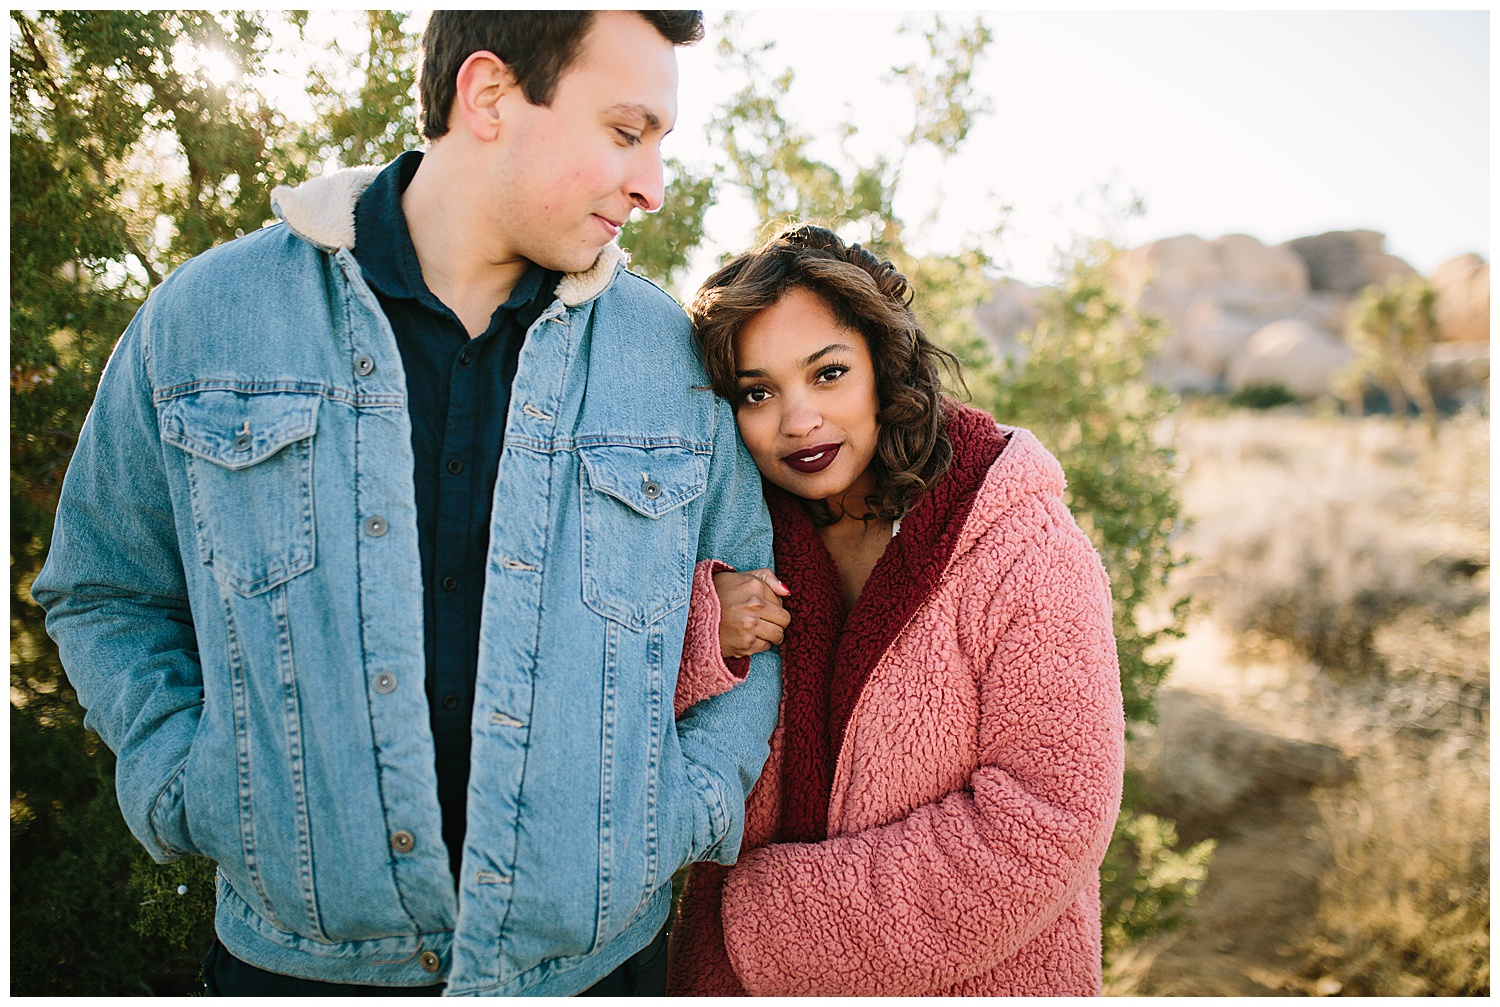 la.lifestyle.photography.session.engaged.malibu.joshuatree.kendralynnephotography-2.jpg